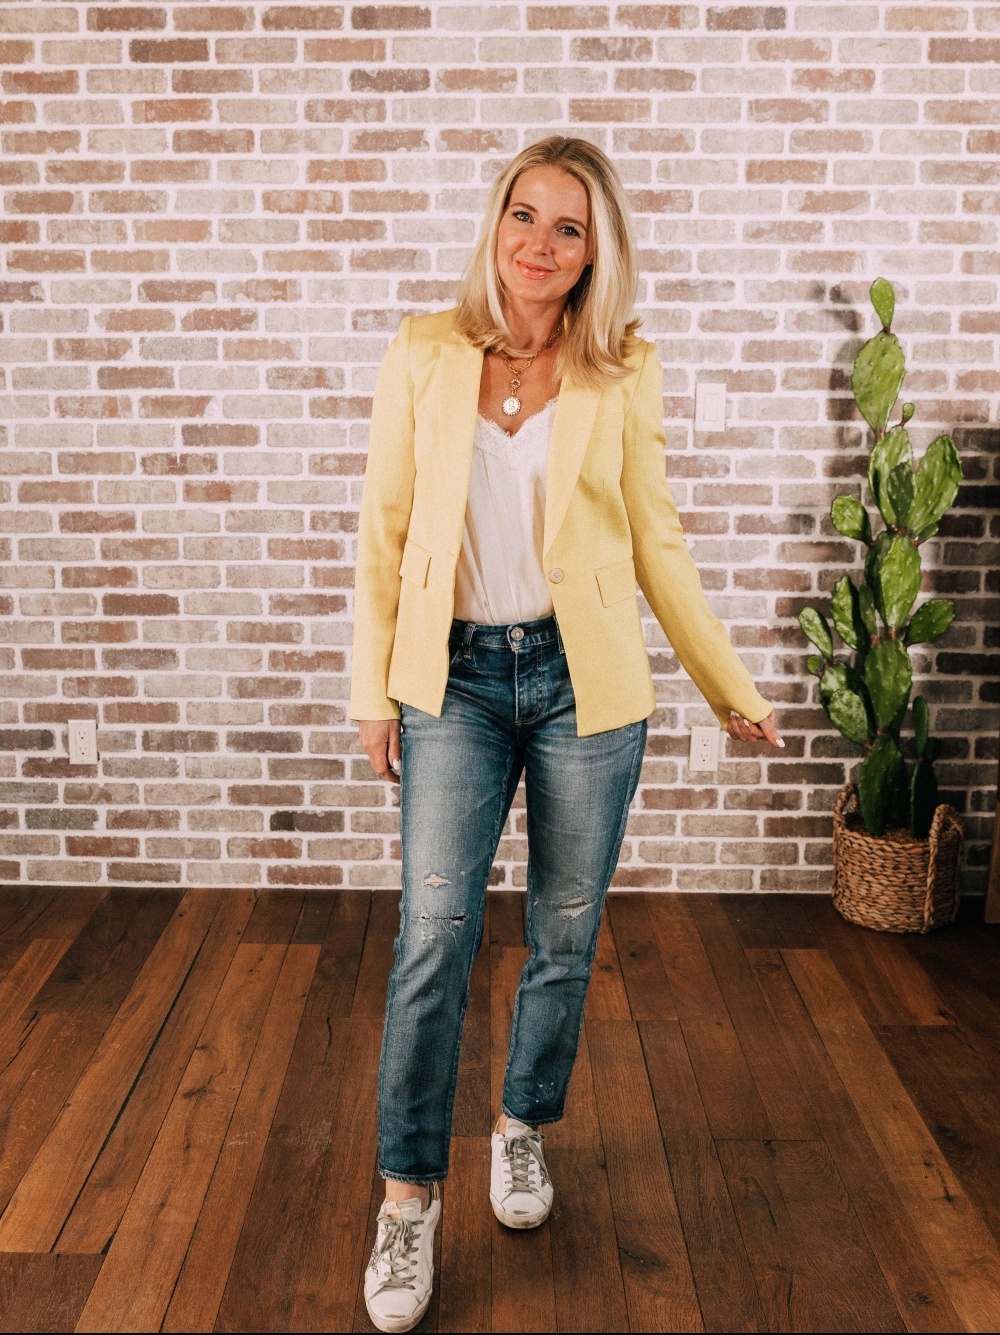 Stylish Work From Home Outfits, Fashion blogger Erin Busbee of BusbeeStyle.com wearing a yellow blazer by Veronica Beard with white cami, Moussy Vintage jeans, and golden goose sneakers in Telluride, Colorado